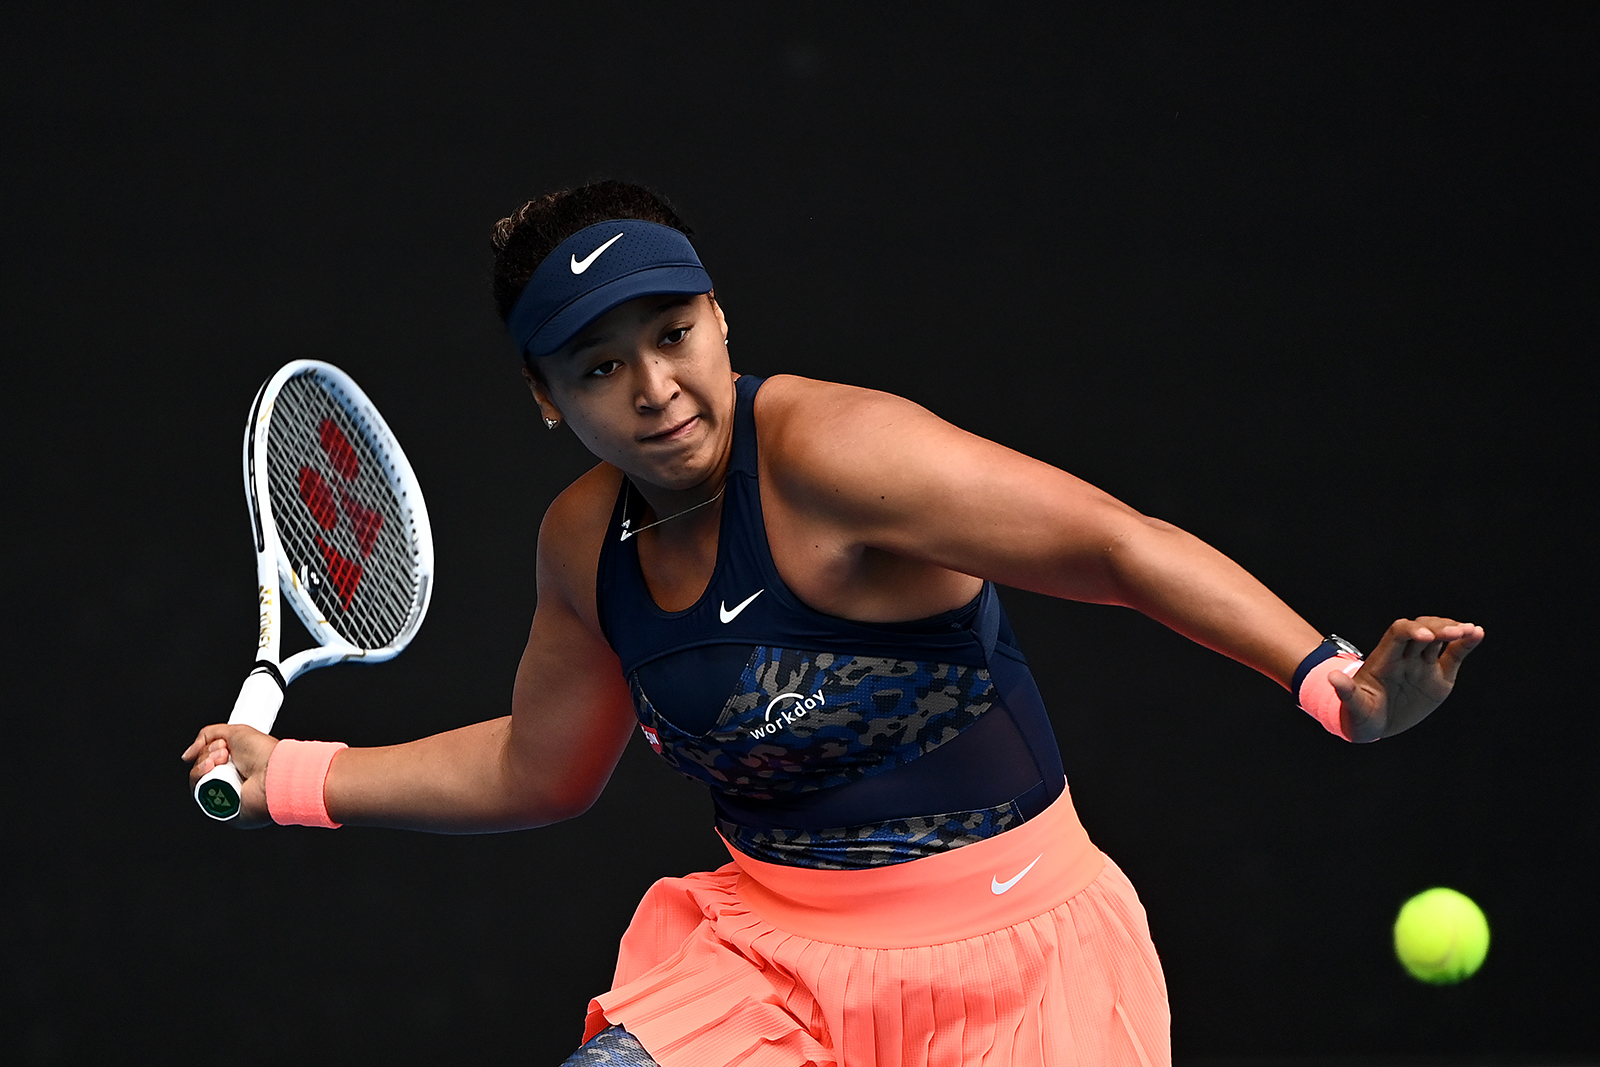 Naomi Osaka of Japan plays a forehand in her women's singles first round match against Anastasia Pavlyuchenkova of Russia during day one of the 2021 Australian Open, on February 8.